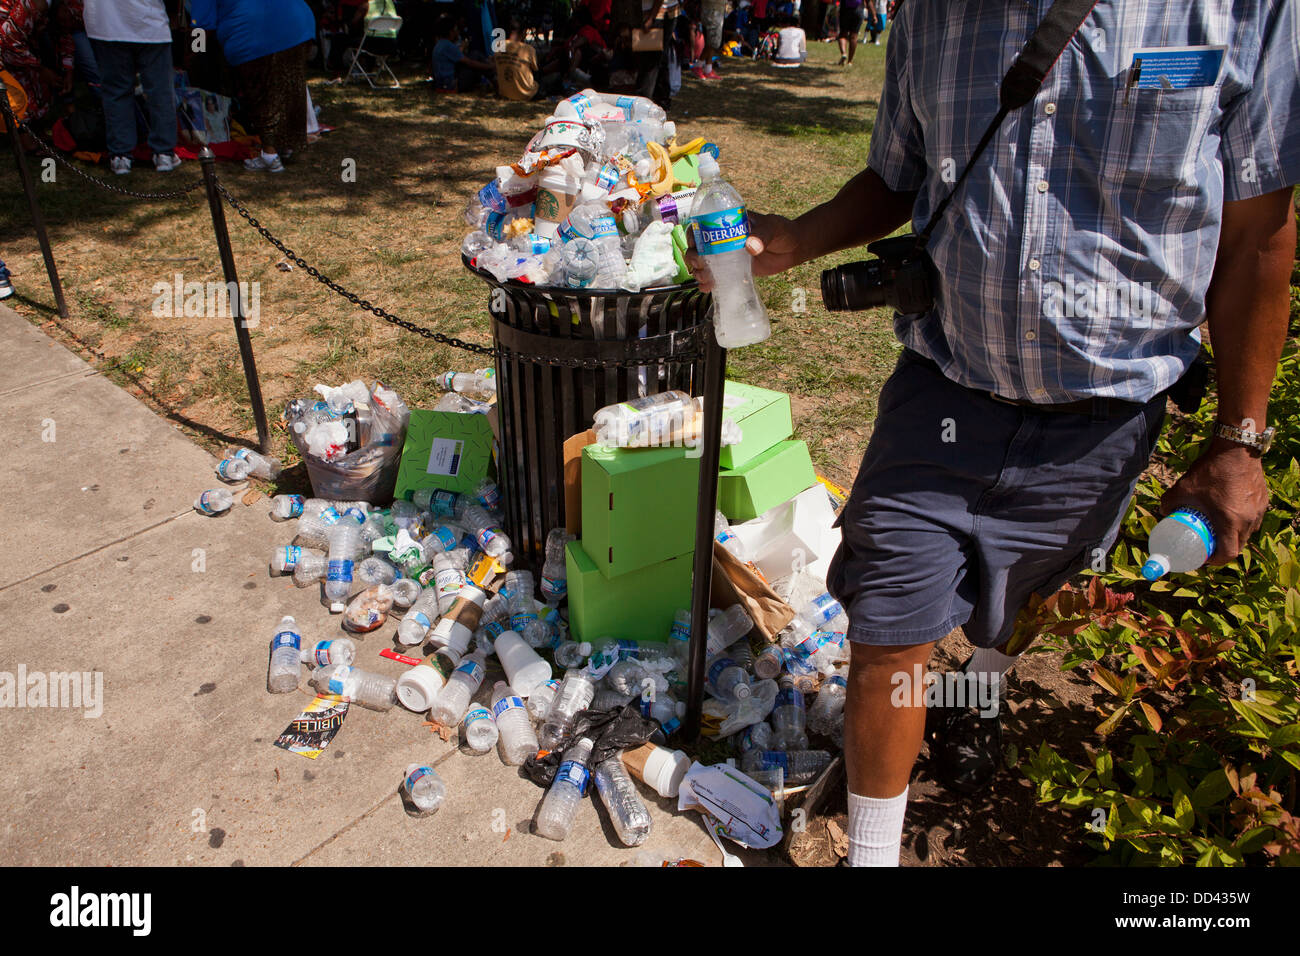 Discarded plastic water bottles overflowing from waste bin - Stock Image